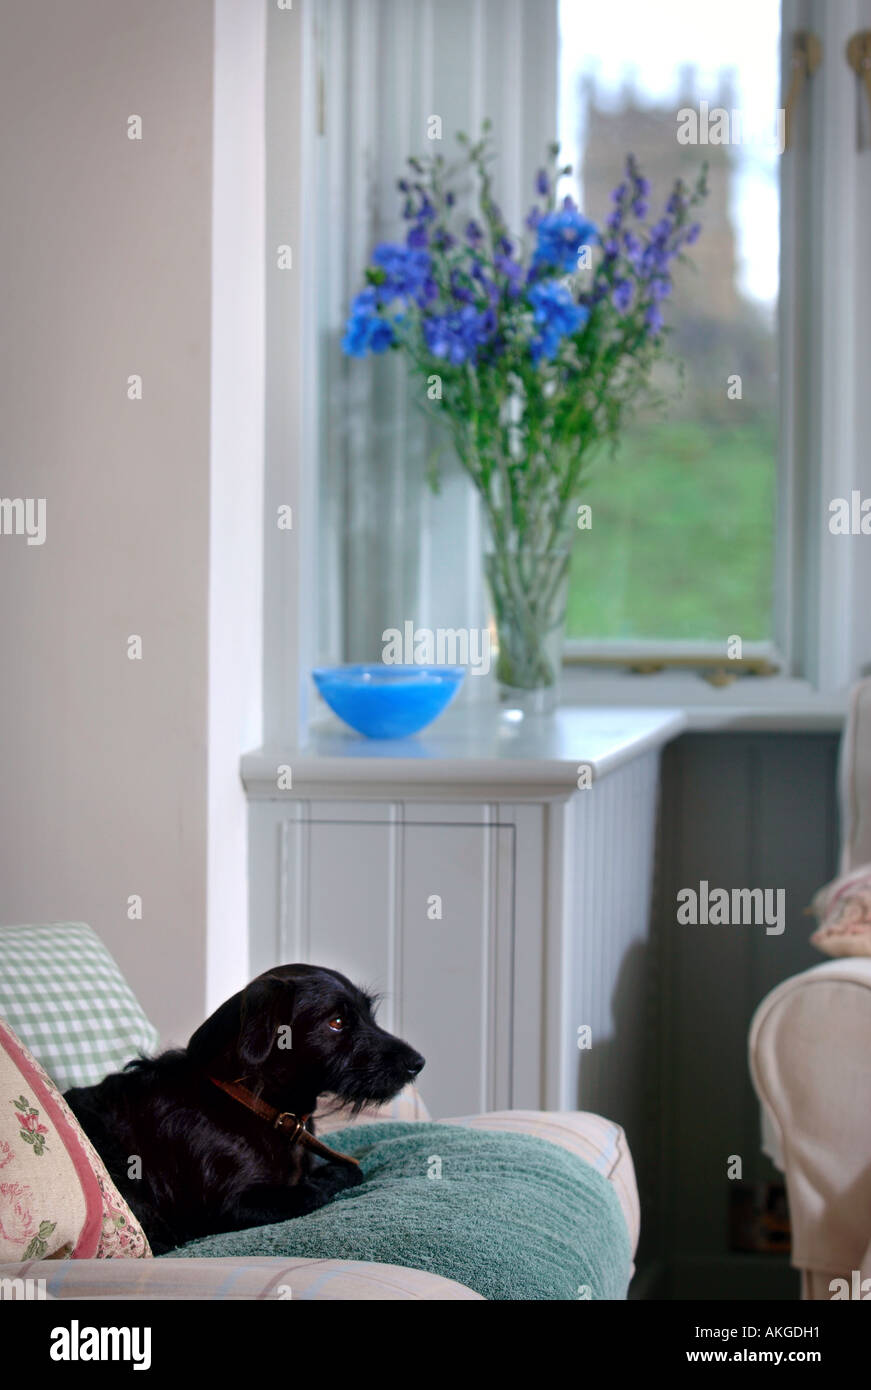 A SMALL BLACK TERRIER DOG ON A SETTEE IN THE LOUNGE OF A TIMBER FRAMED HOUSE UK - Stock Image